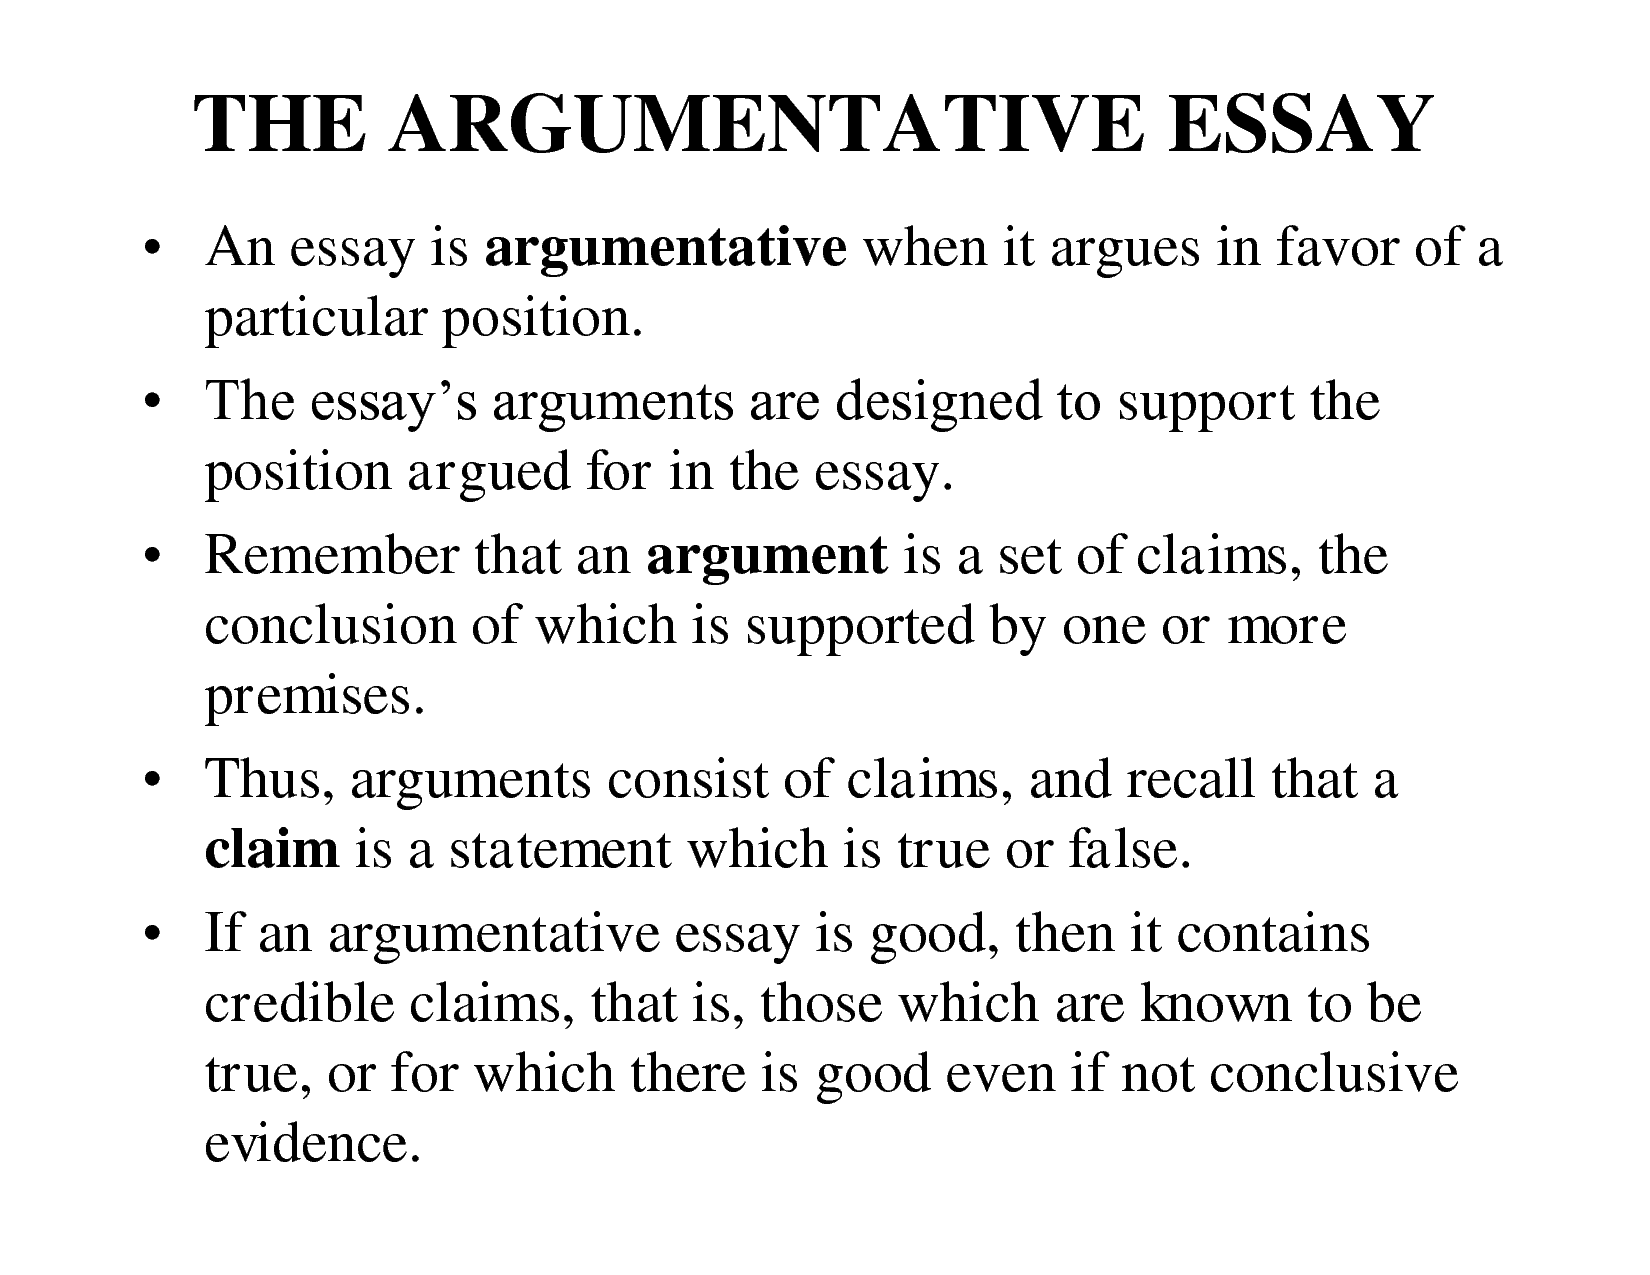 structure of an argumentative essay Structuring an argument in your essays, two important concerns for lecturers are: whether or not your essay actually answers the specific question that has been set whether or not the essay has a clear line of argument this means you need to analyse the topic carefully and structure your essay to orient the reader back to.